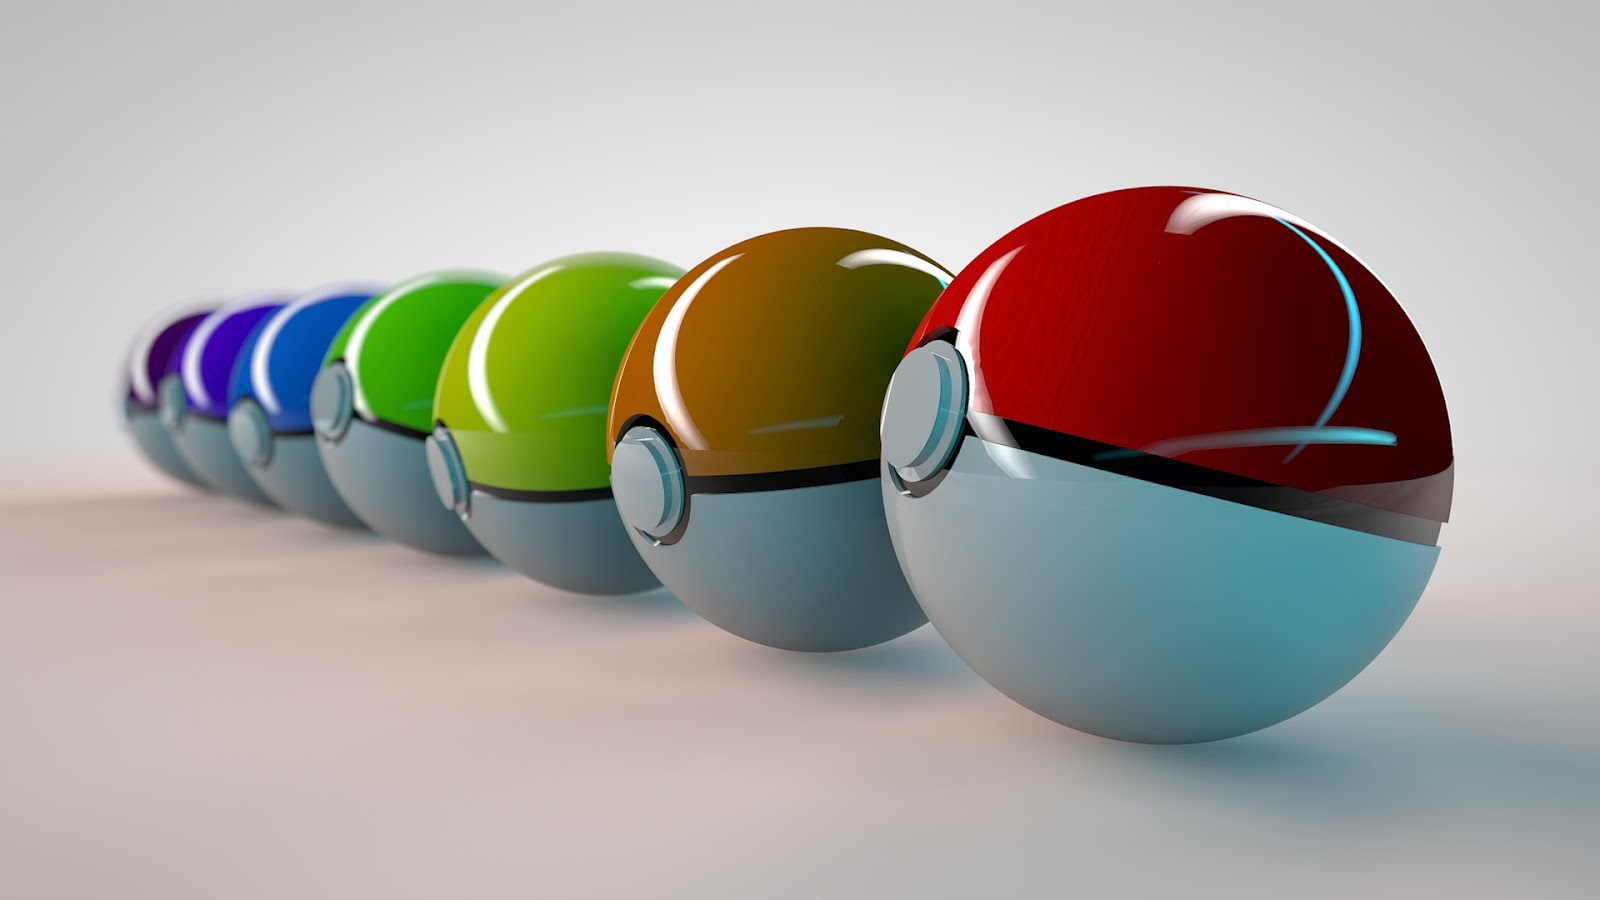 All wallpapers 3d balls hd desktop wallpapers 2013 Free 3d